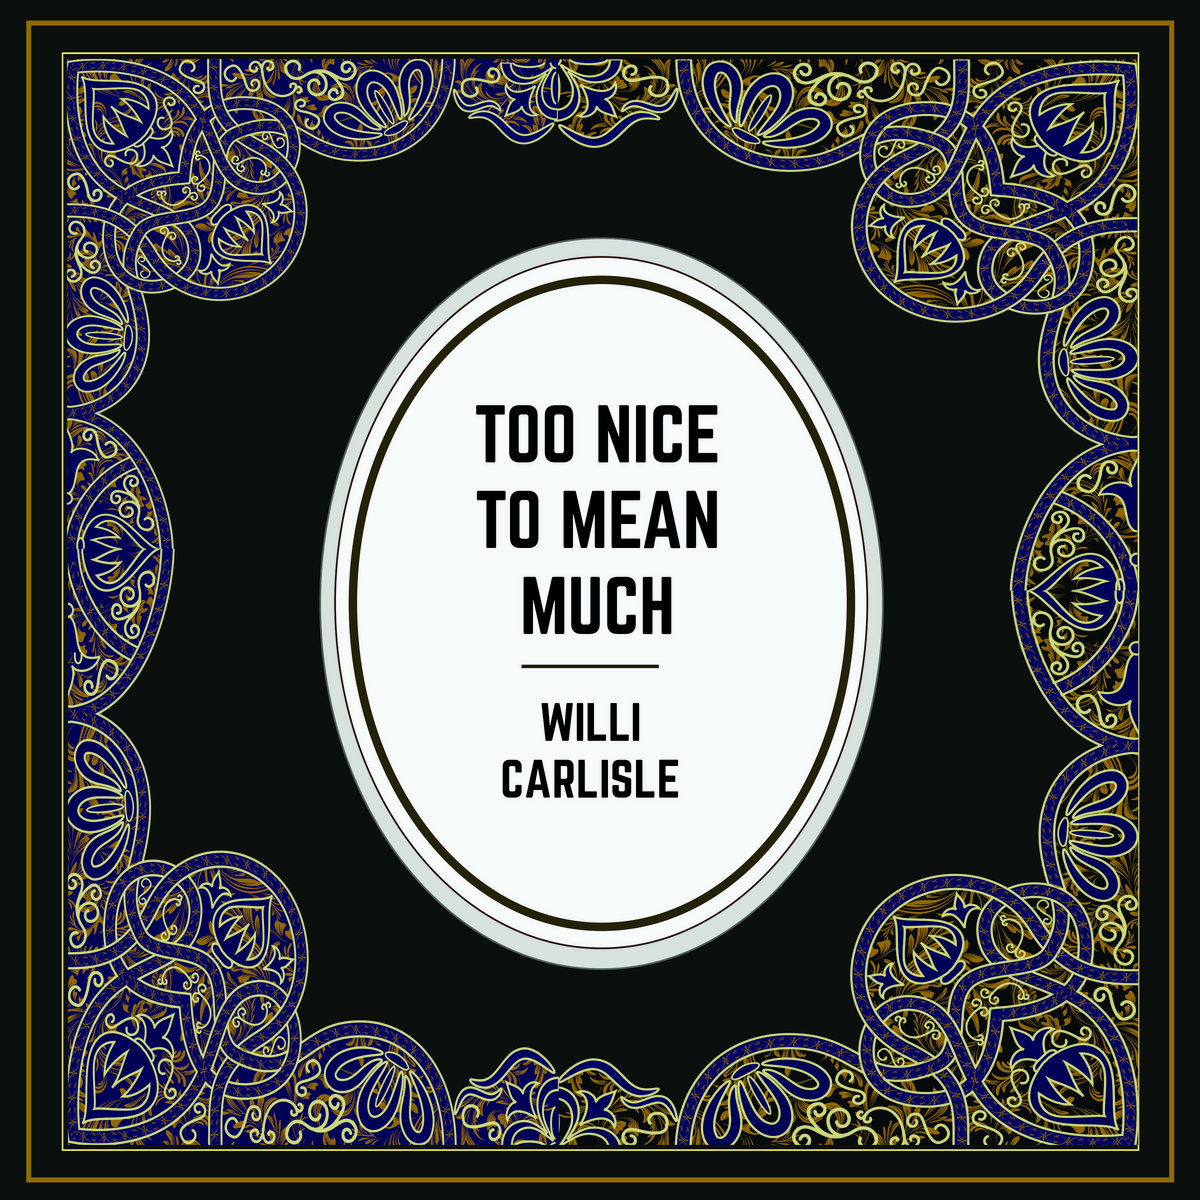 what does too nice mean